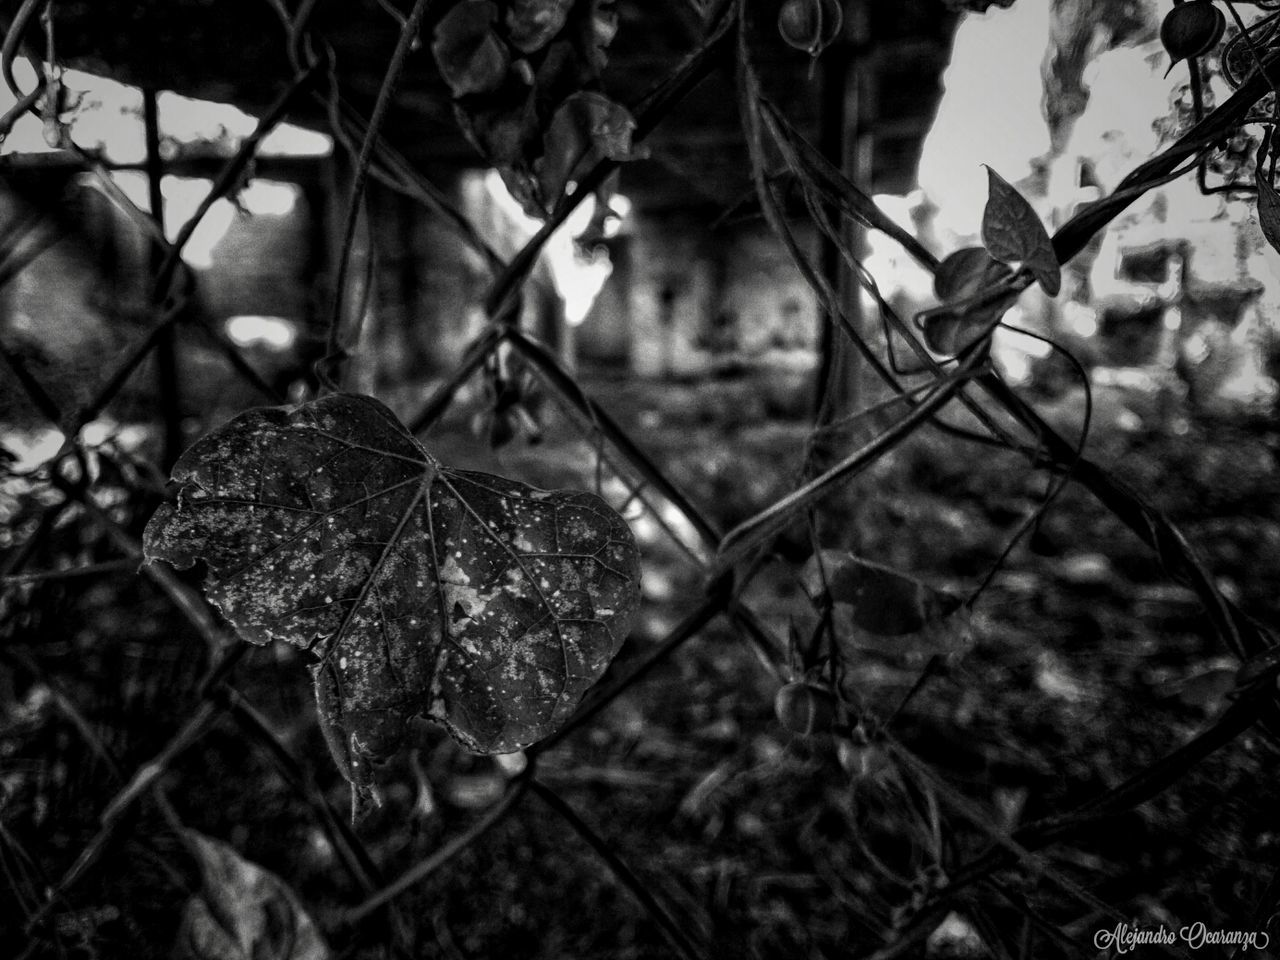 Detrás del Desastre Sky Plant Photos Guadalajara Jalisco Photographer Photography Mexico Guadalajara Photo First Eyeem Photo Photographie  Illuminated Beauty In Nature No People Close-up Day Nature Black And White Photography City Blake_and_white Blsckandwhite Blackandwhitephotography Black & White Shadow Nightphotography